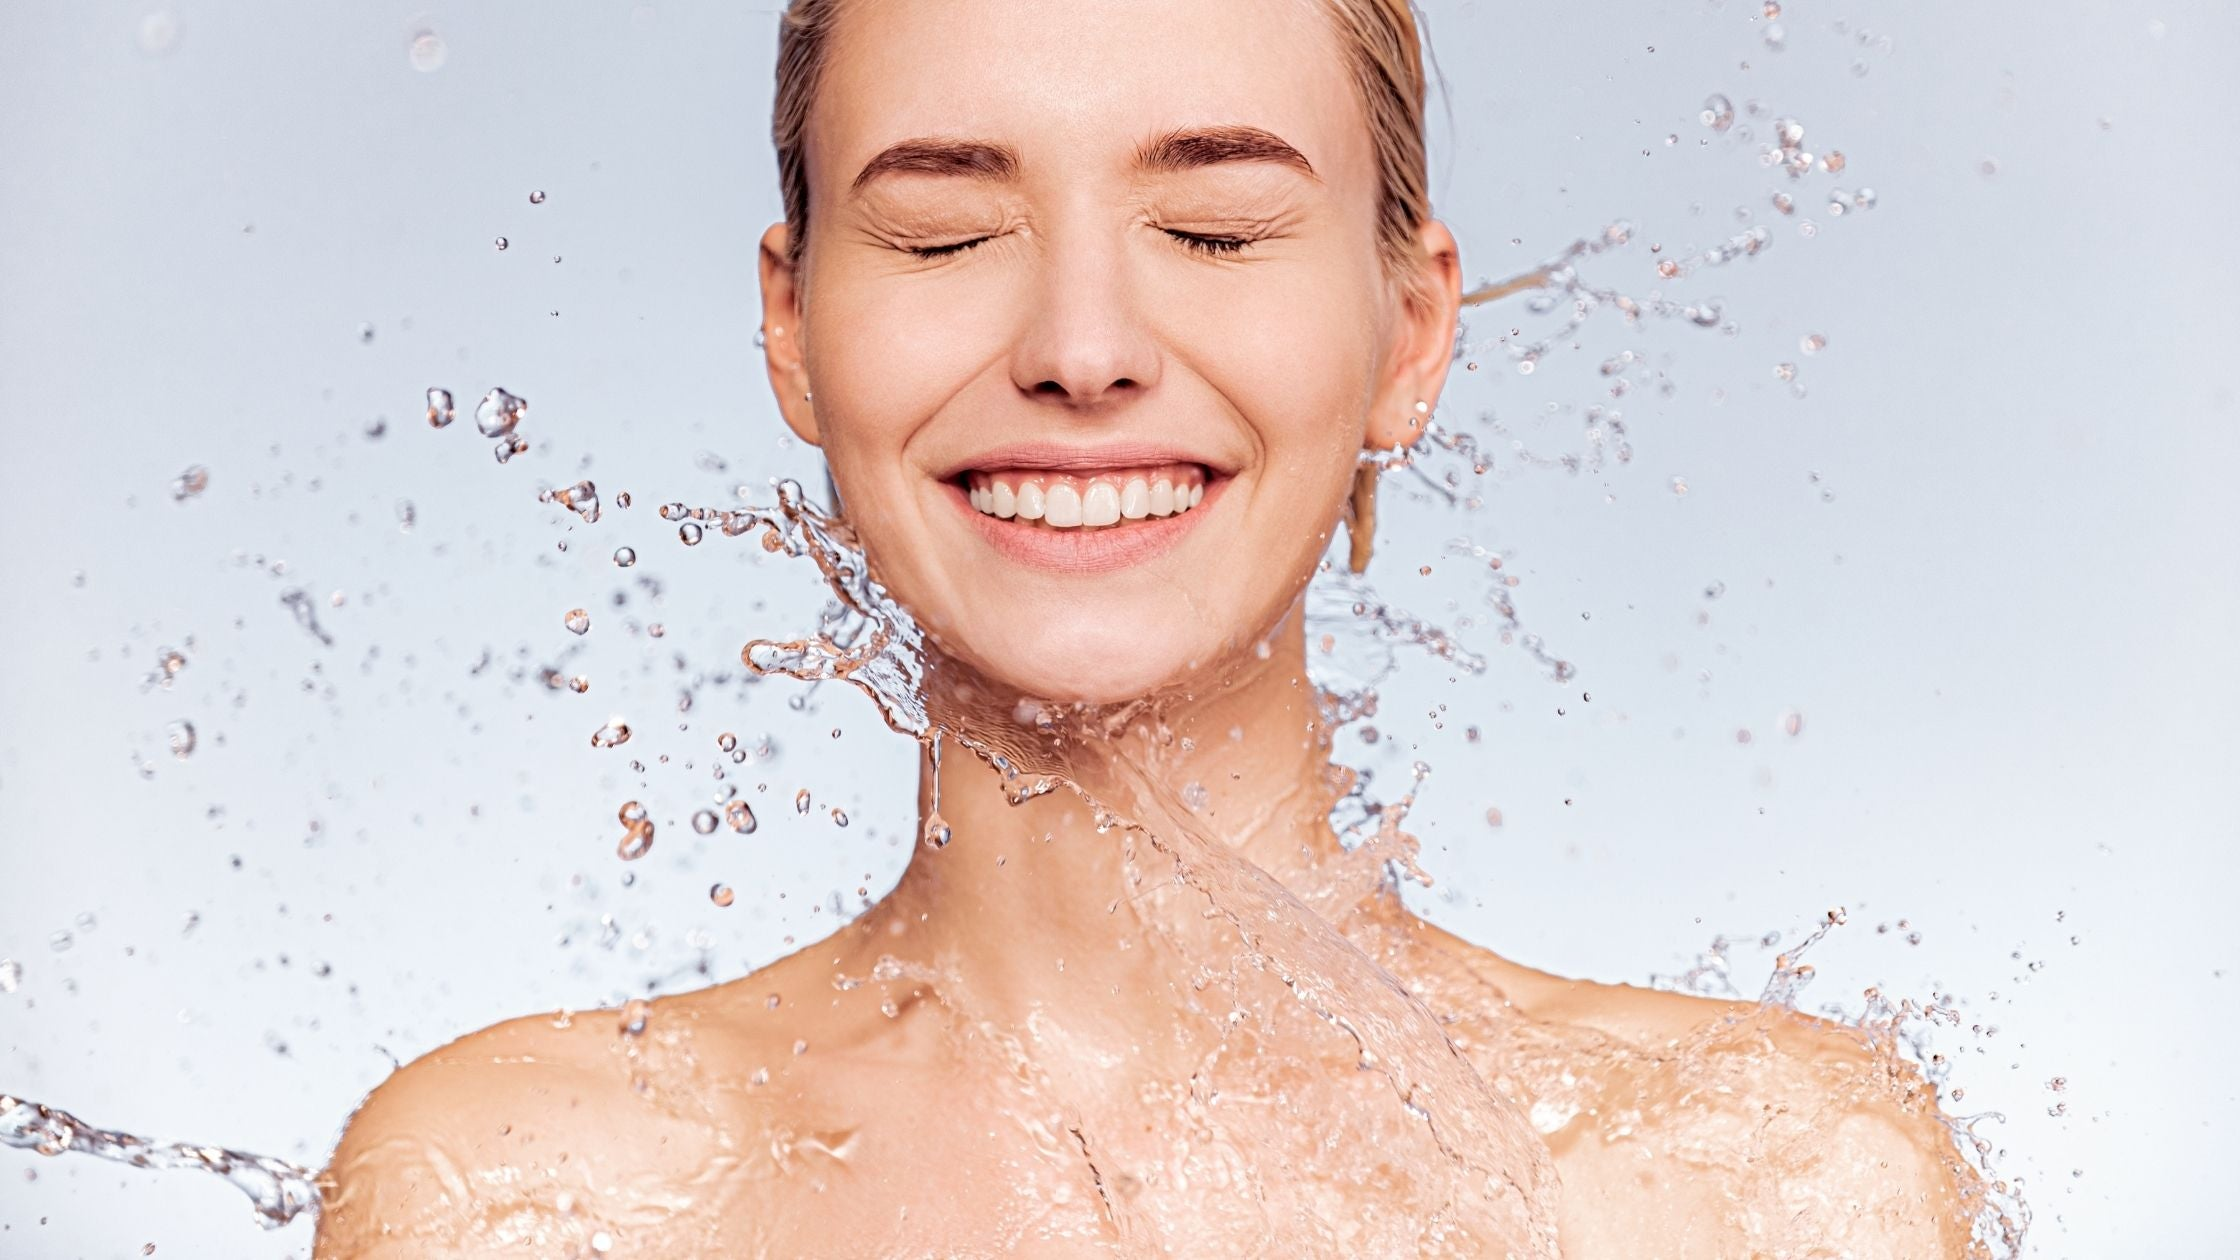 Facts about skin hydration